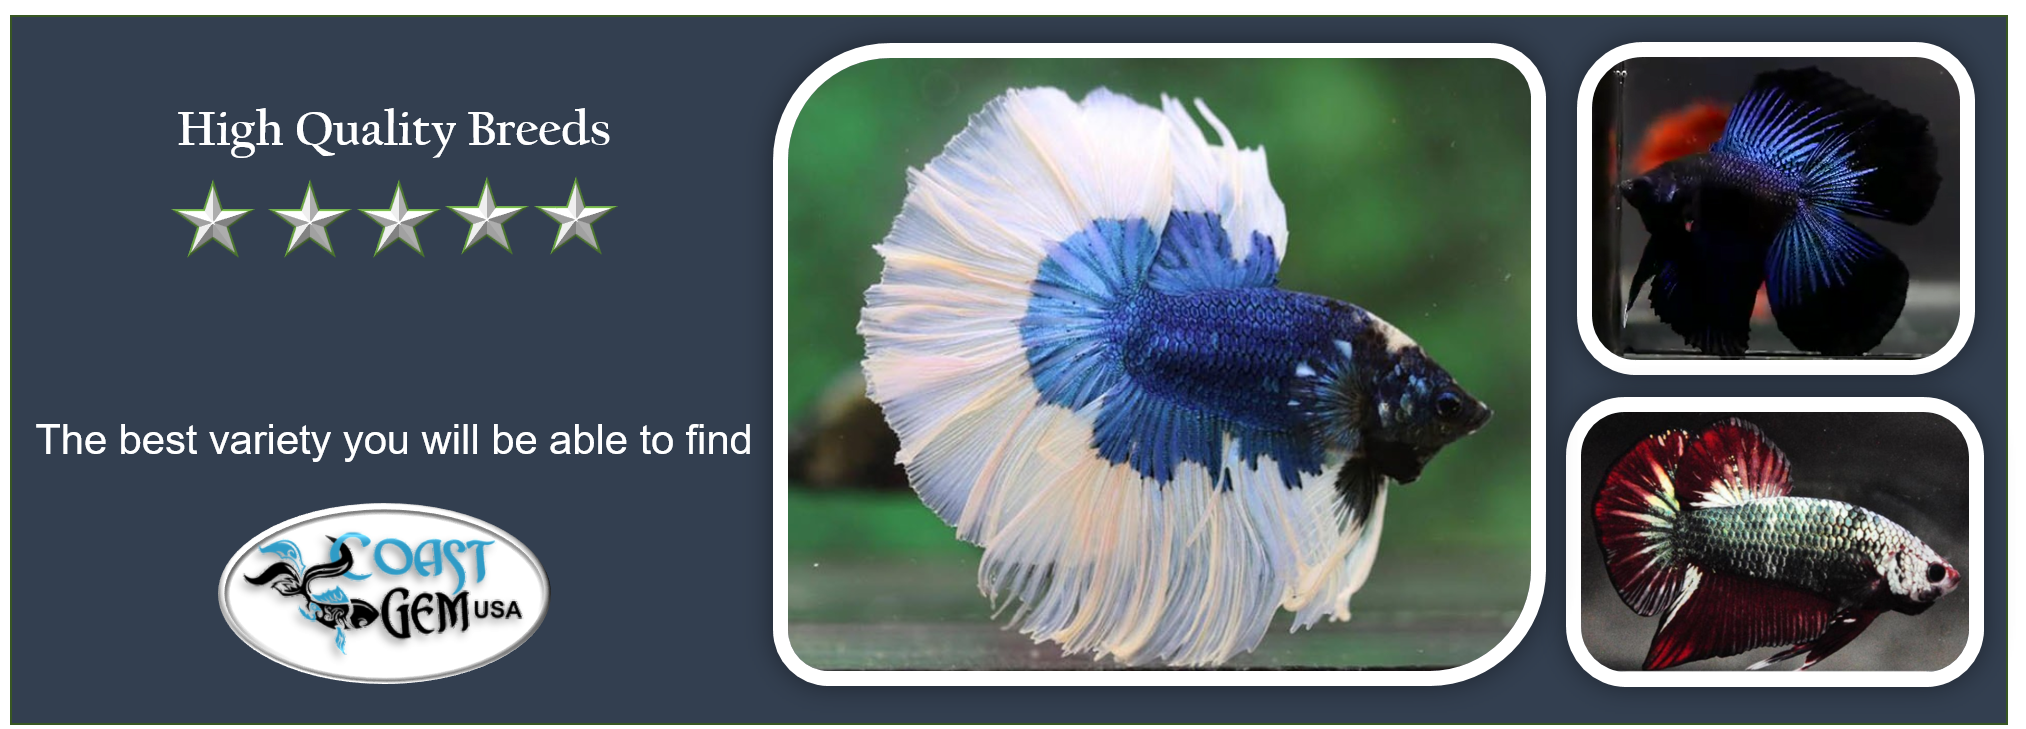 betta fish, Thai betta, show quality fish